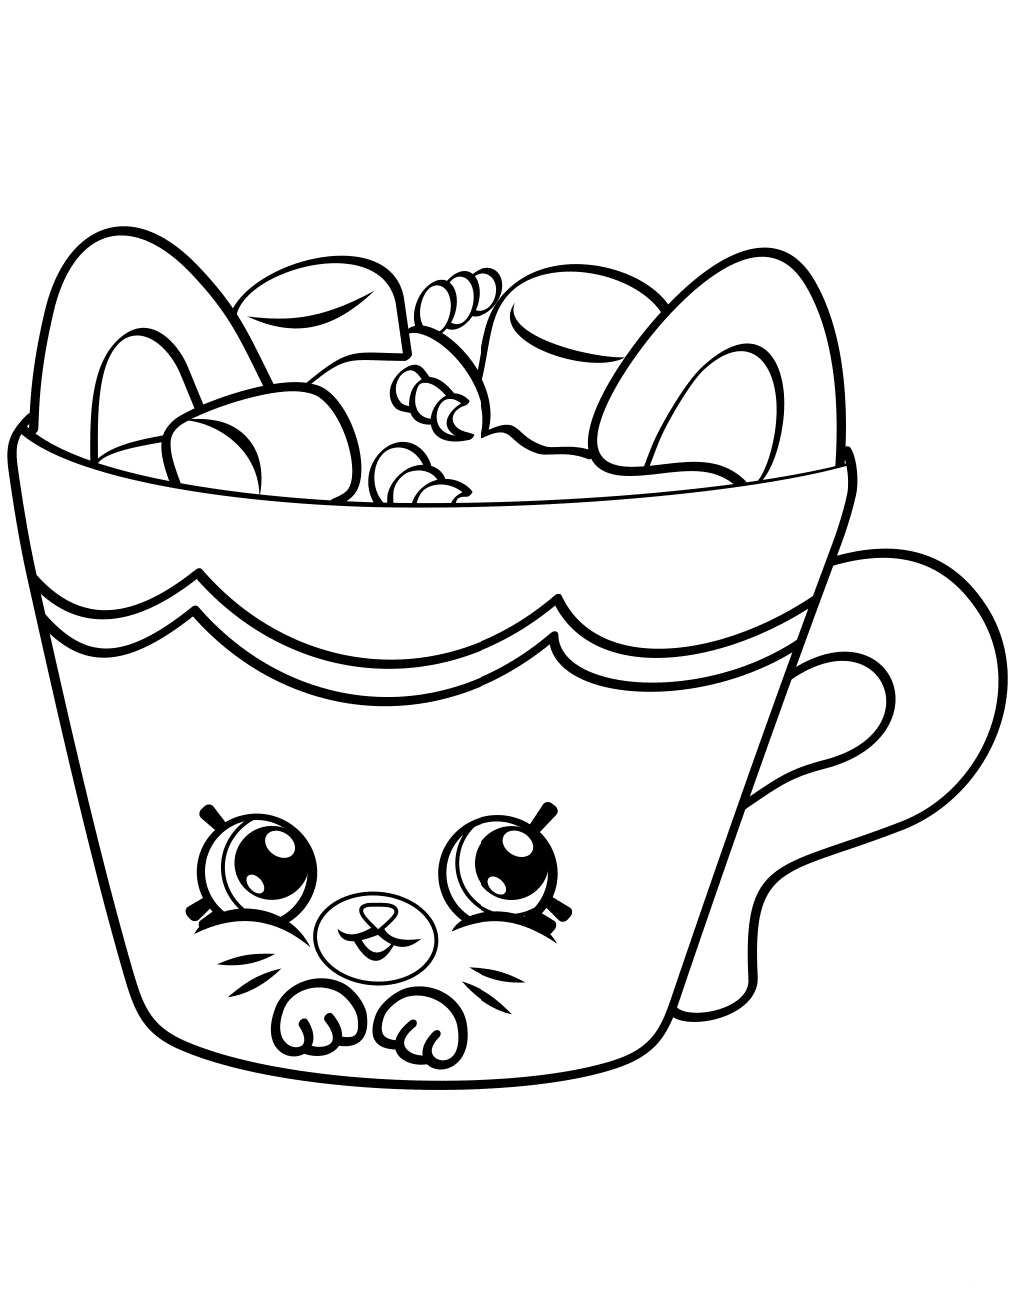 Shopkins coloring pages wishes - Hot Choc Shopkin Season 4